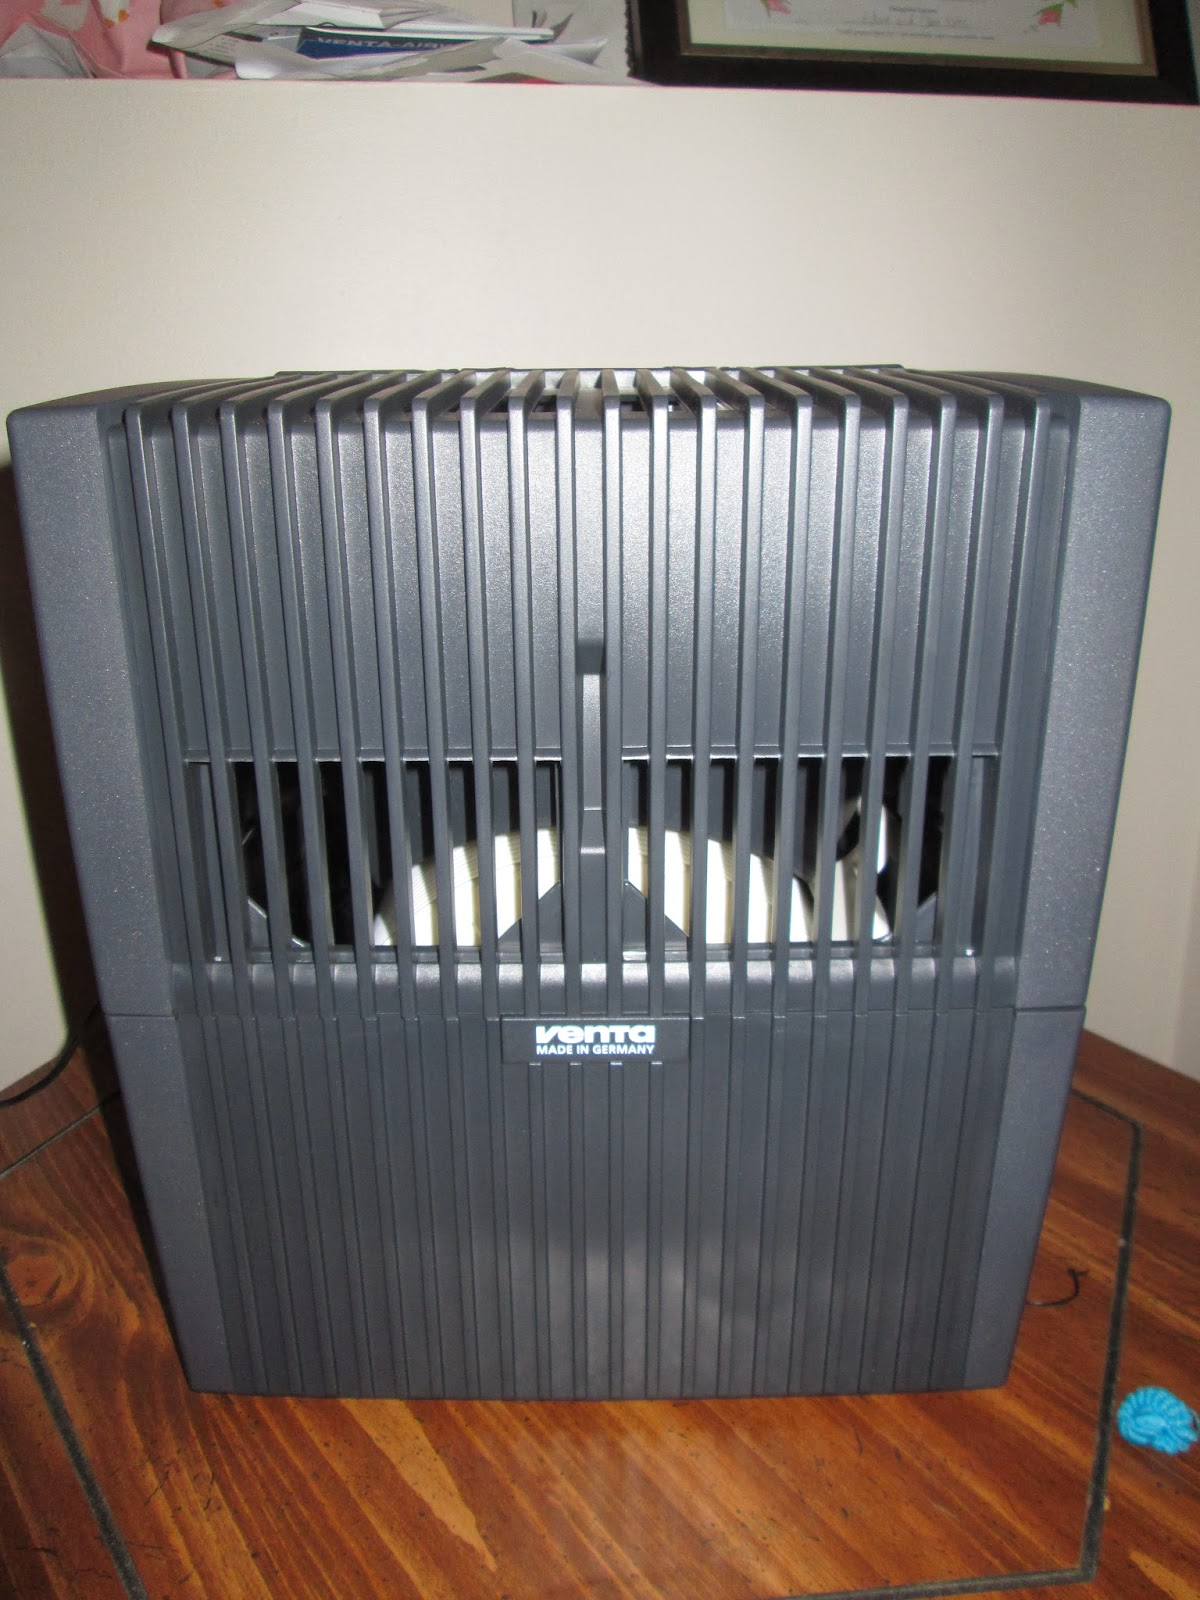 Your World Healthy And Natural How A Venta Airwasher Can